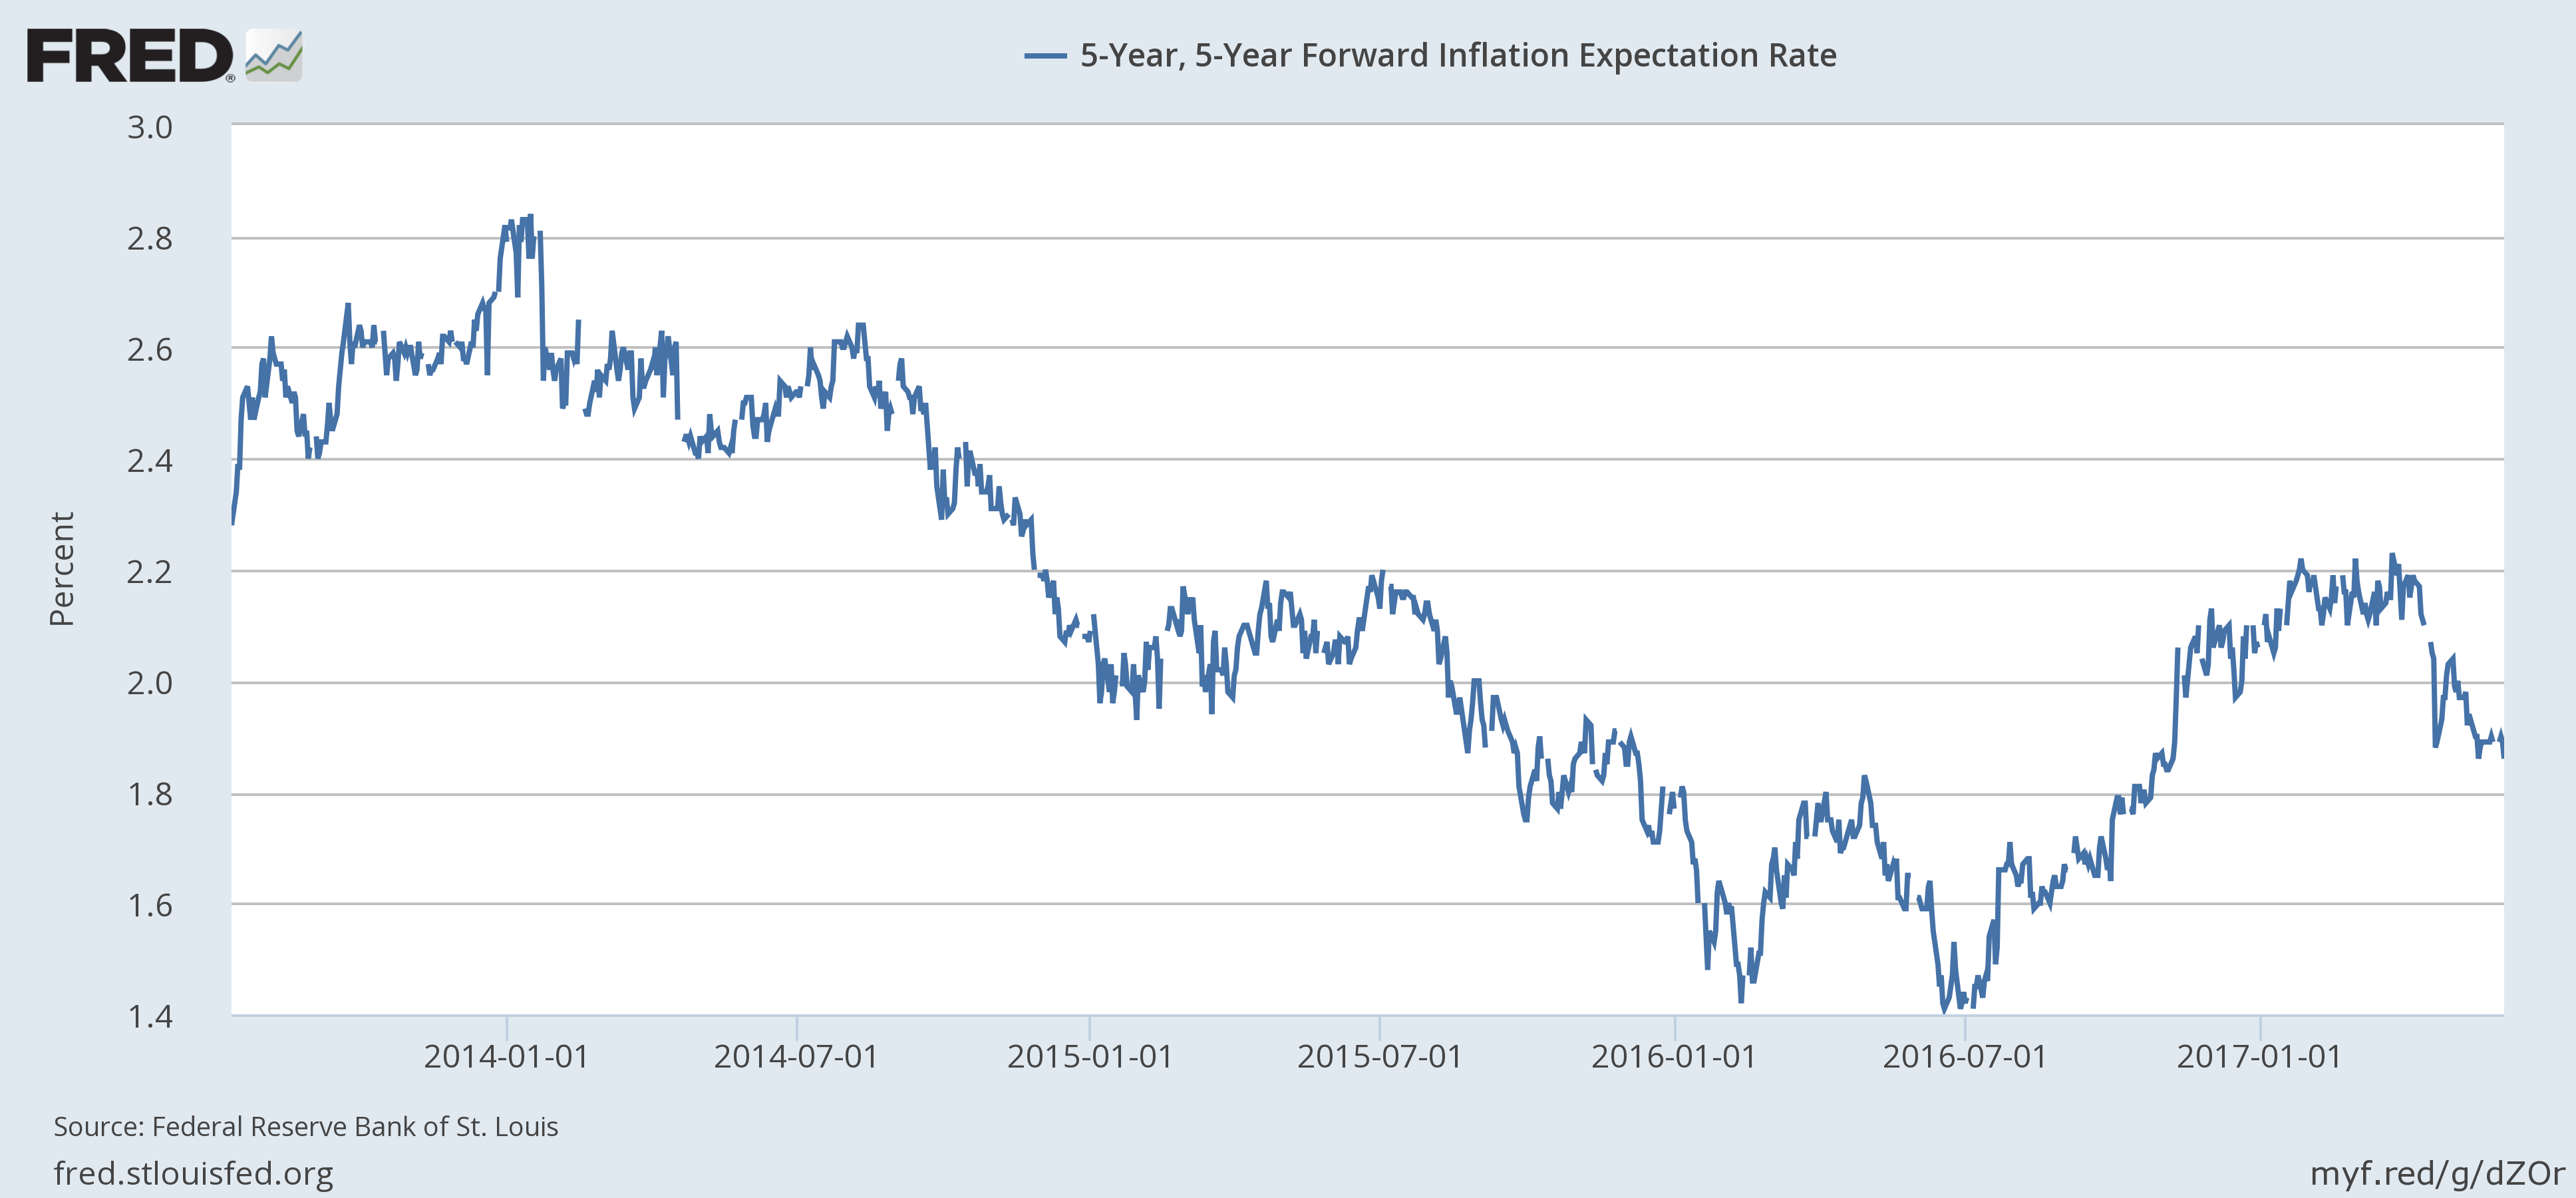 5-Year Forward Inflation Expectation Rate, January 2014 - June 2017